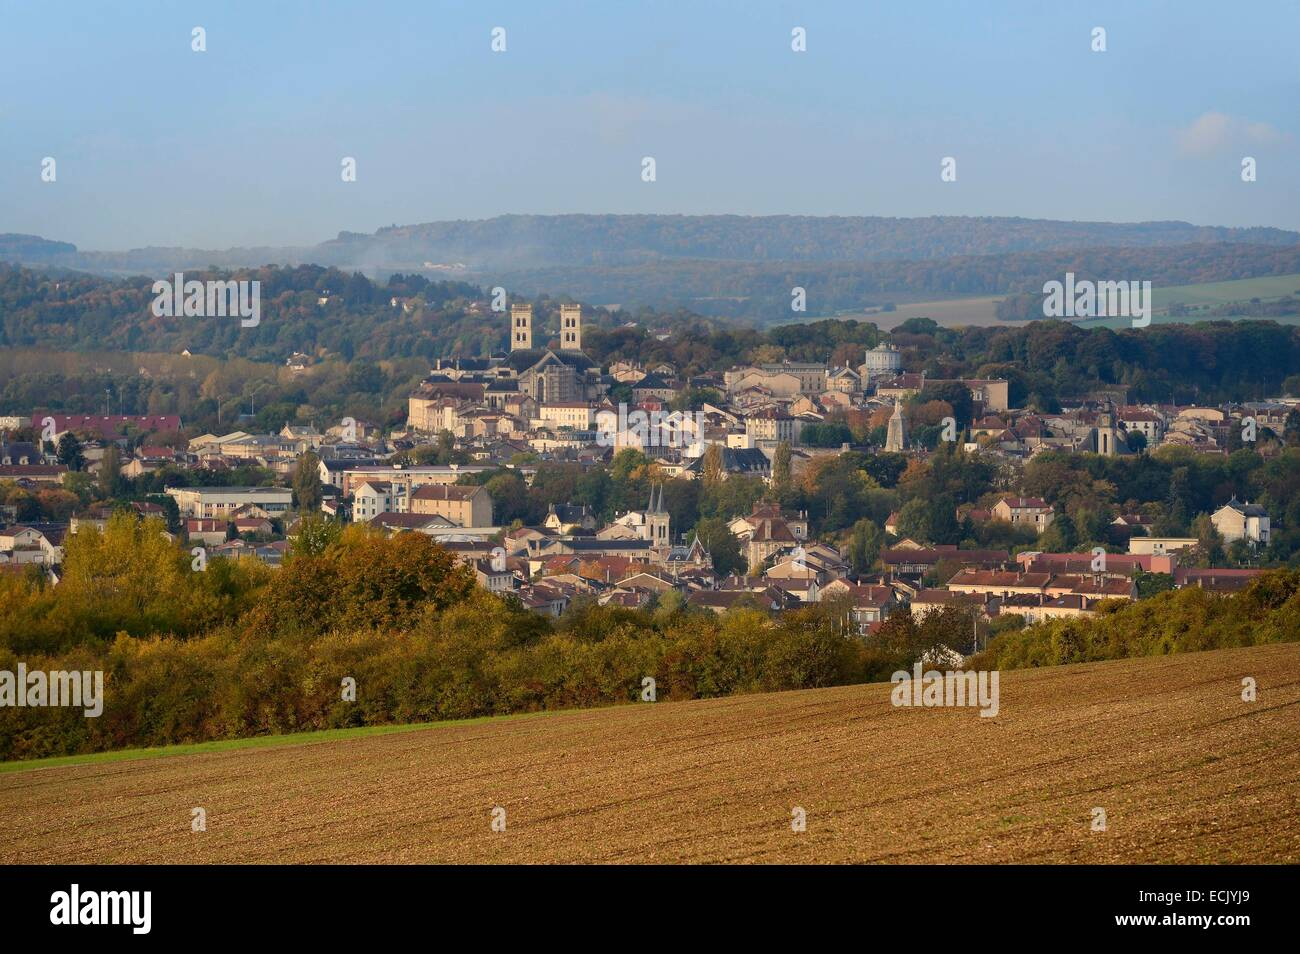 France, Meuse, the city of Verdun seen from a nearby hill - Stock Image